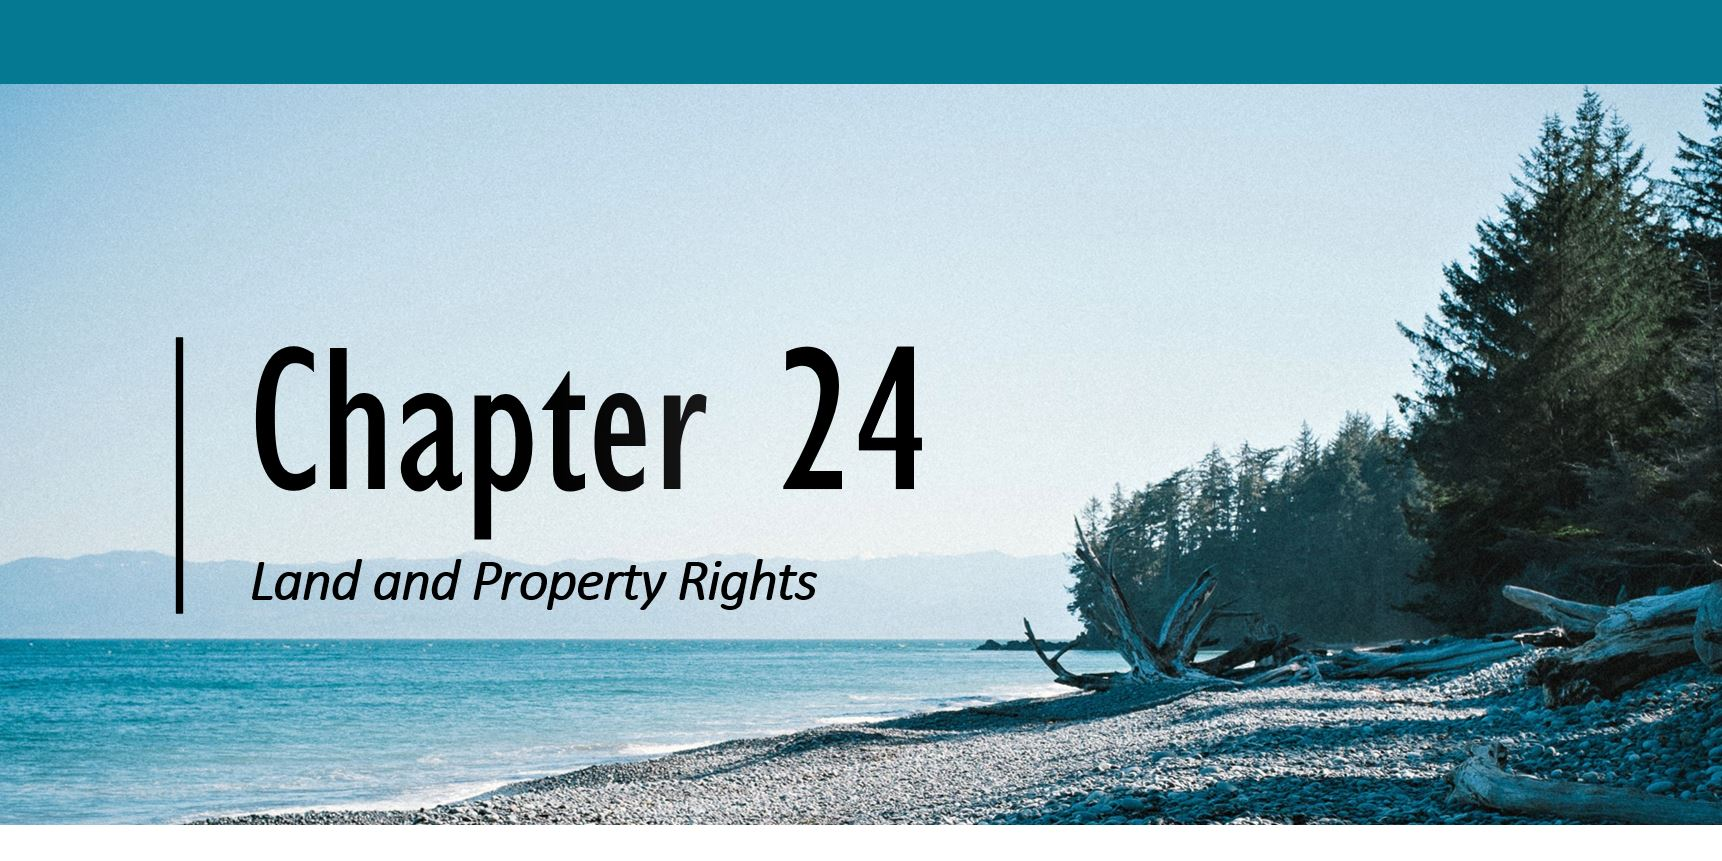 Chapter 24: Land and Property Rights